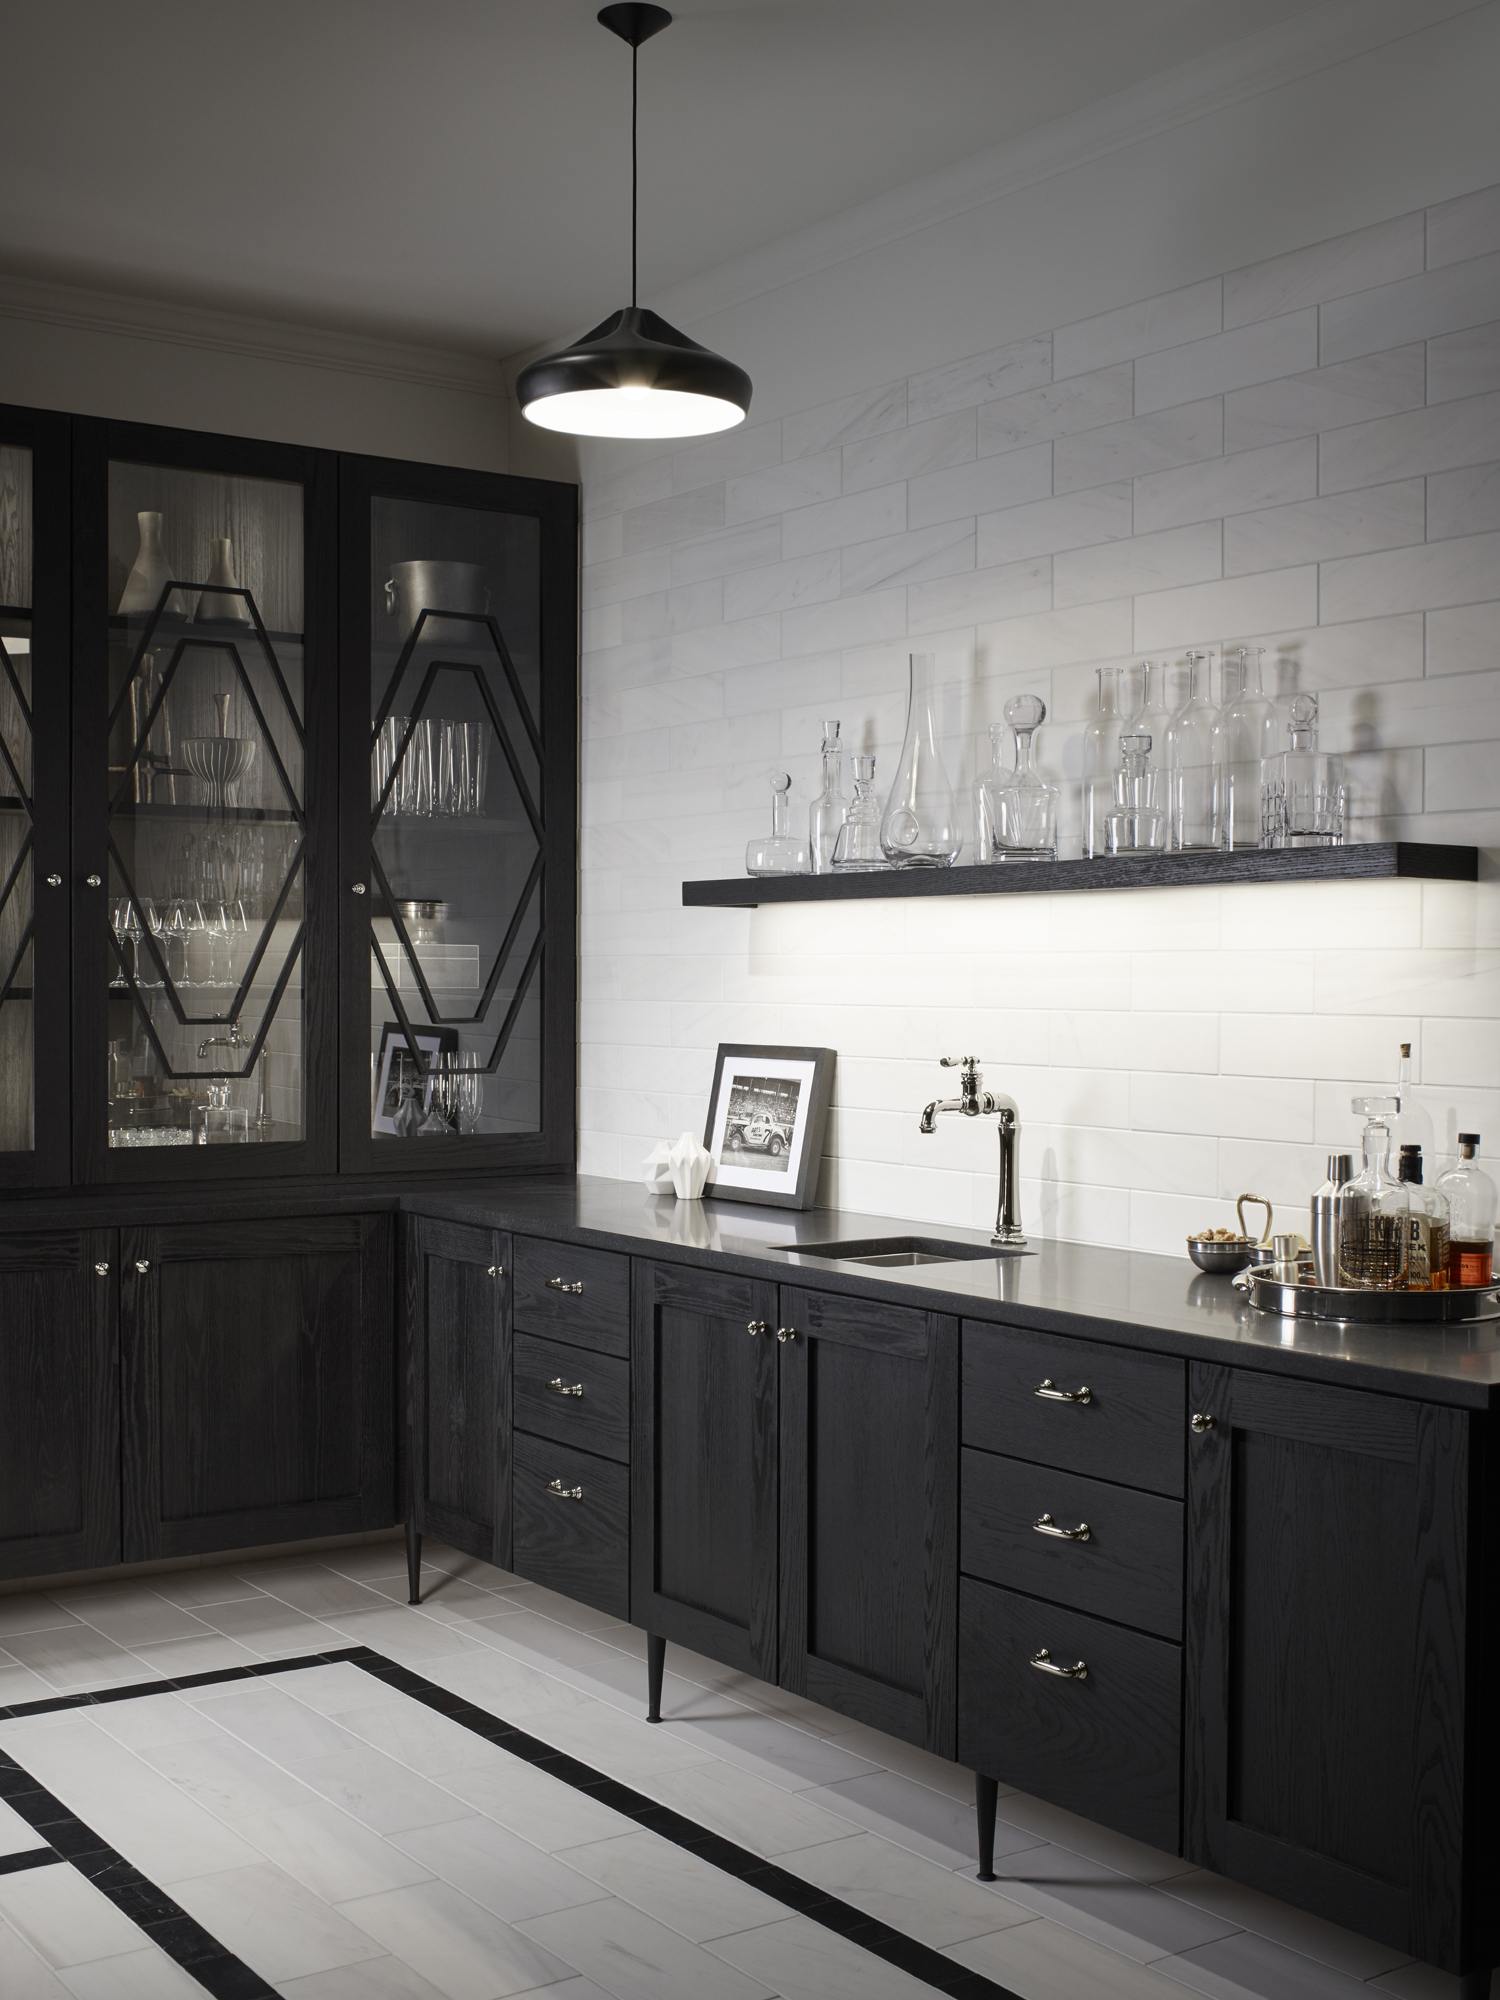 Artifacts Gentleman's bar faucet     Strive bar sink     Nero Marquina     Dolomite Corina     The formal butler's pantry is enjoying a bit of a renaissance, and the bar faucet adds the right dash of vintage charm.